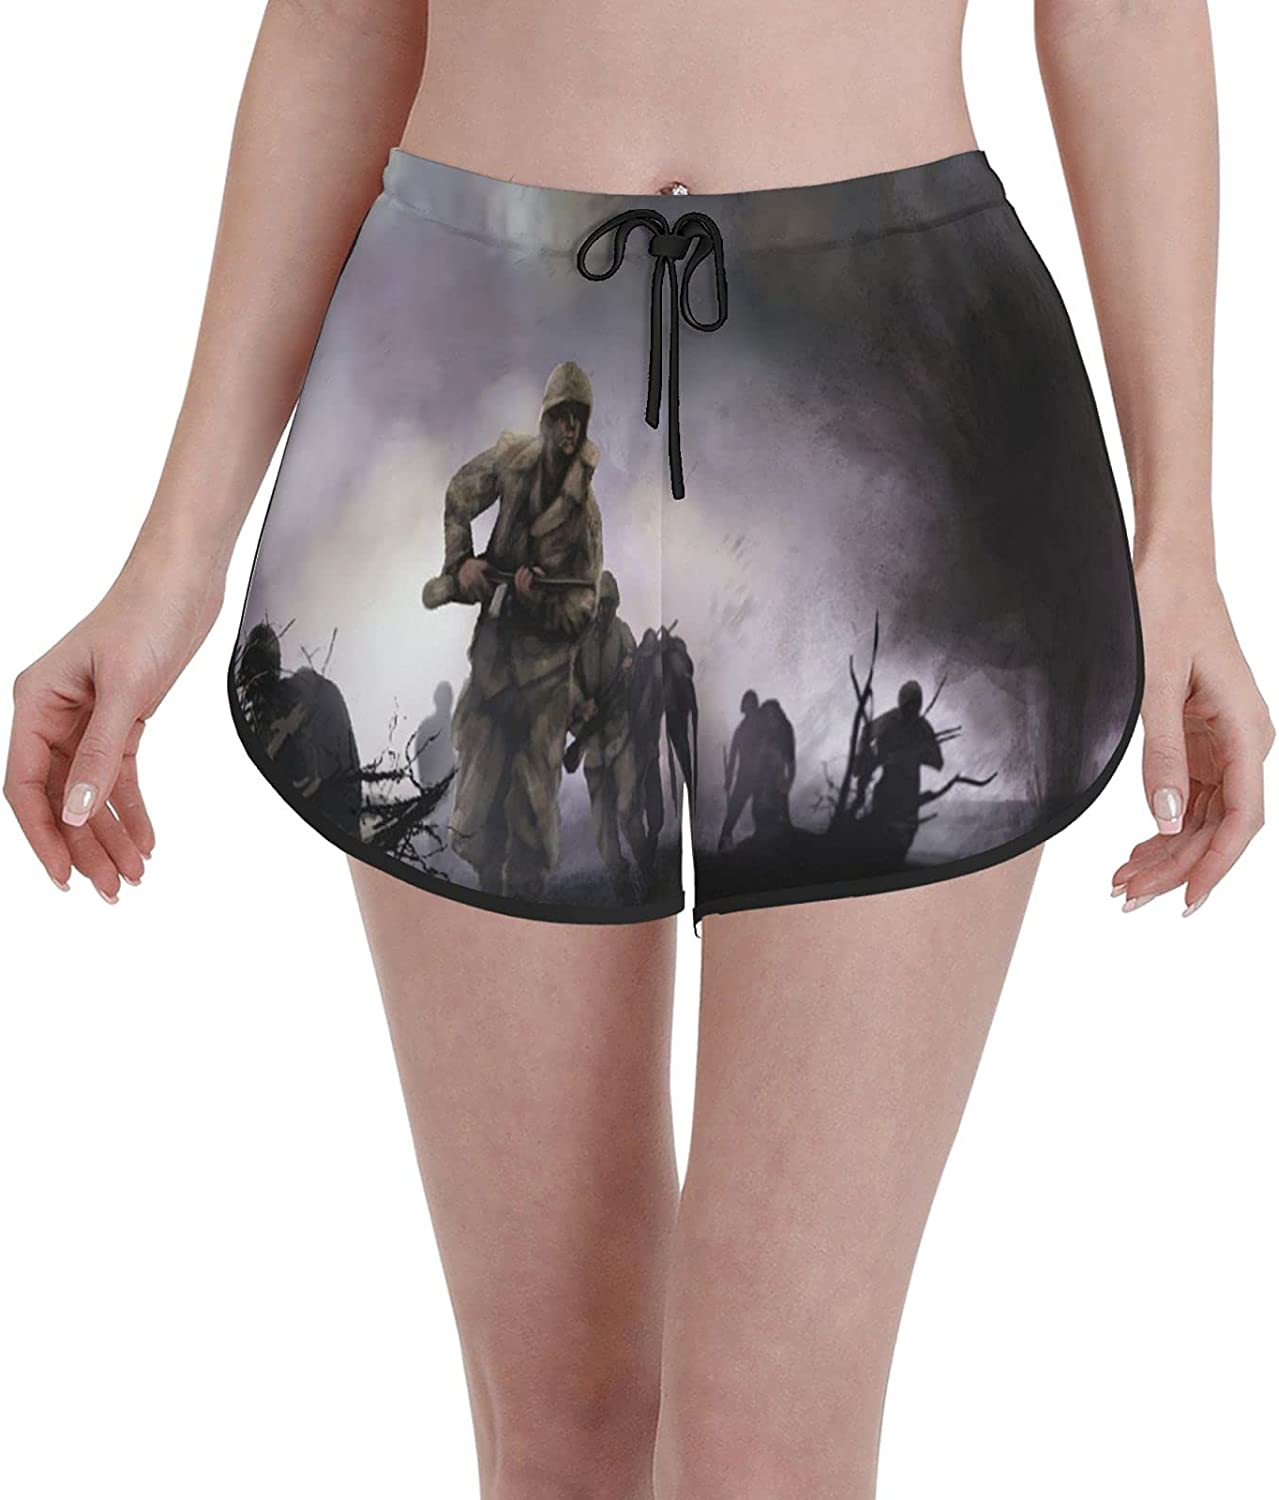 Comfortable Casual Max 51% OFF Board Shorts for American Women Soldier Bombing free shipping Girls